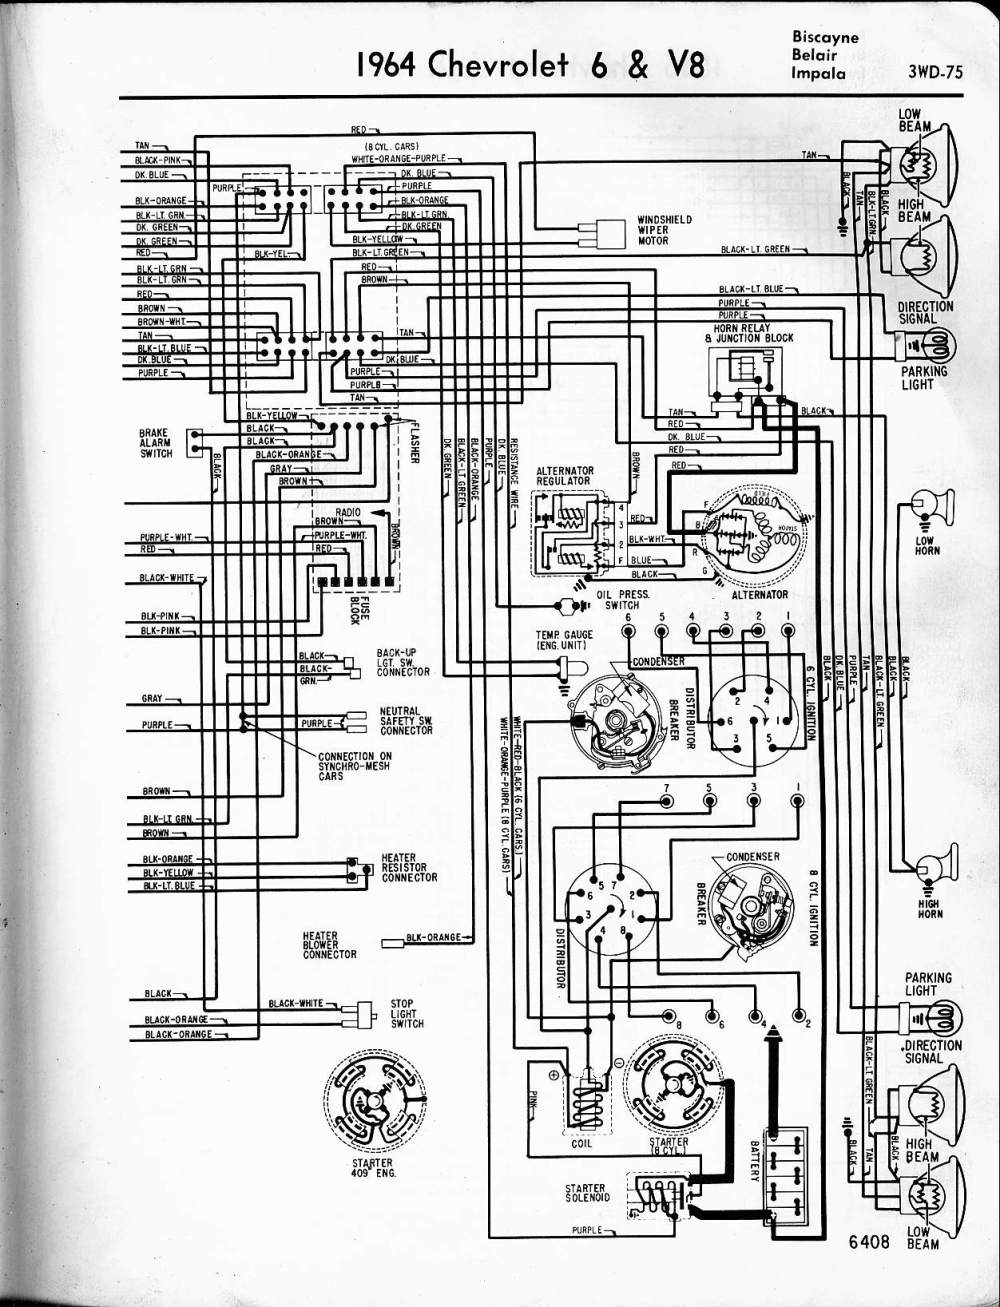 medium resolution of 1964 chevy wiring diagram wiring diagram origin 2002 chevy trailblazer 4x4 wiring diagram 1964 gm ignition wiring diagram